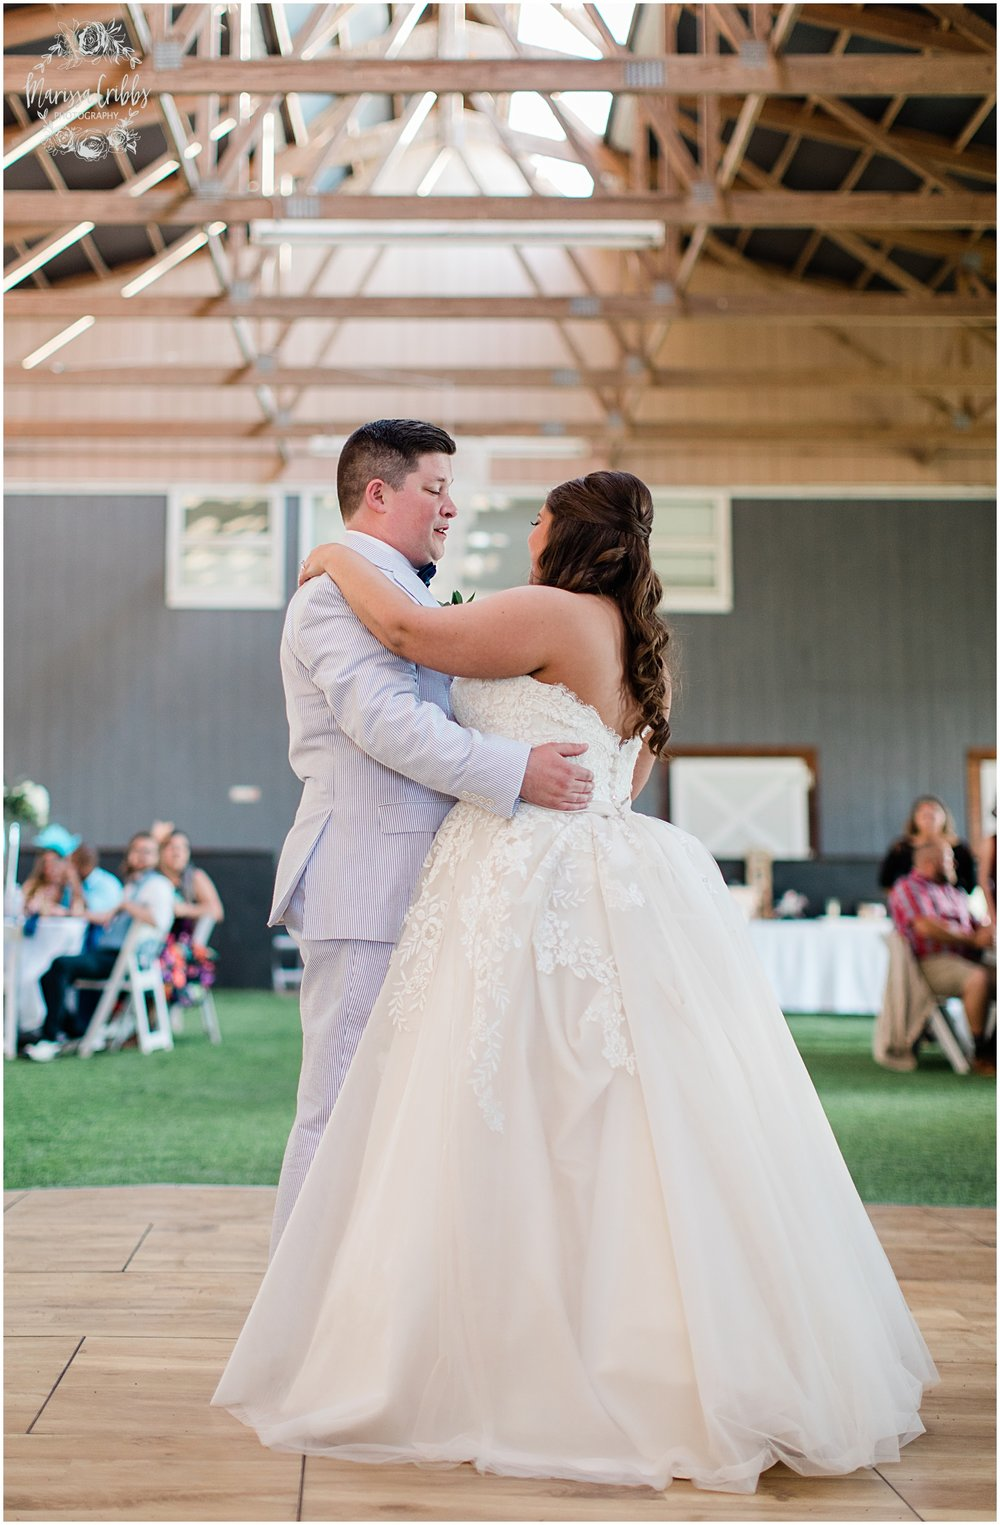 ANDREA & MICHAEL WEDDING | HICKORY CREEK RANCH | MARISSA CRIBBS PHOTOGRAPHY_4890.jpg